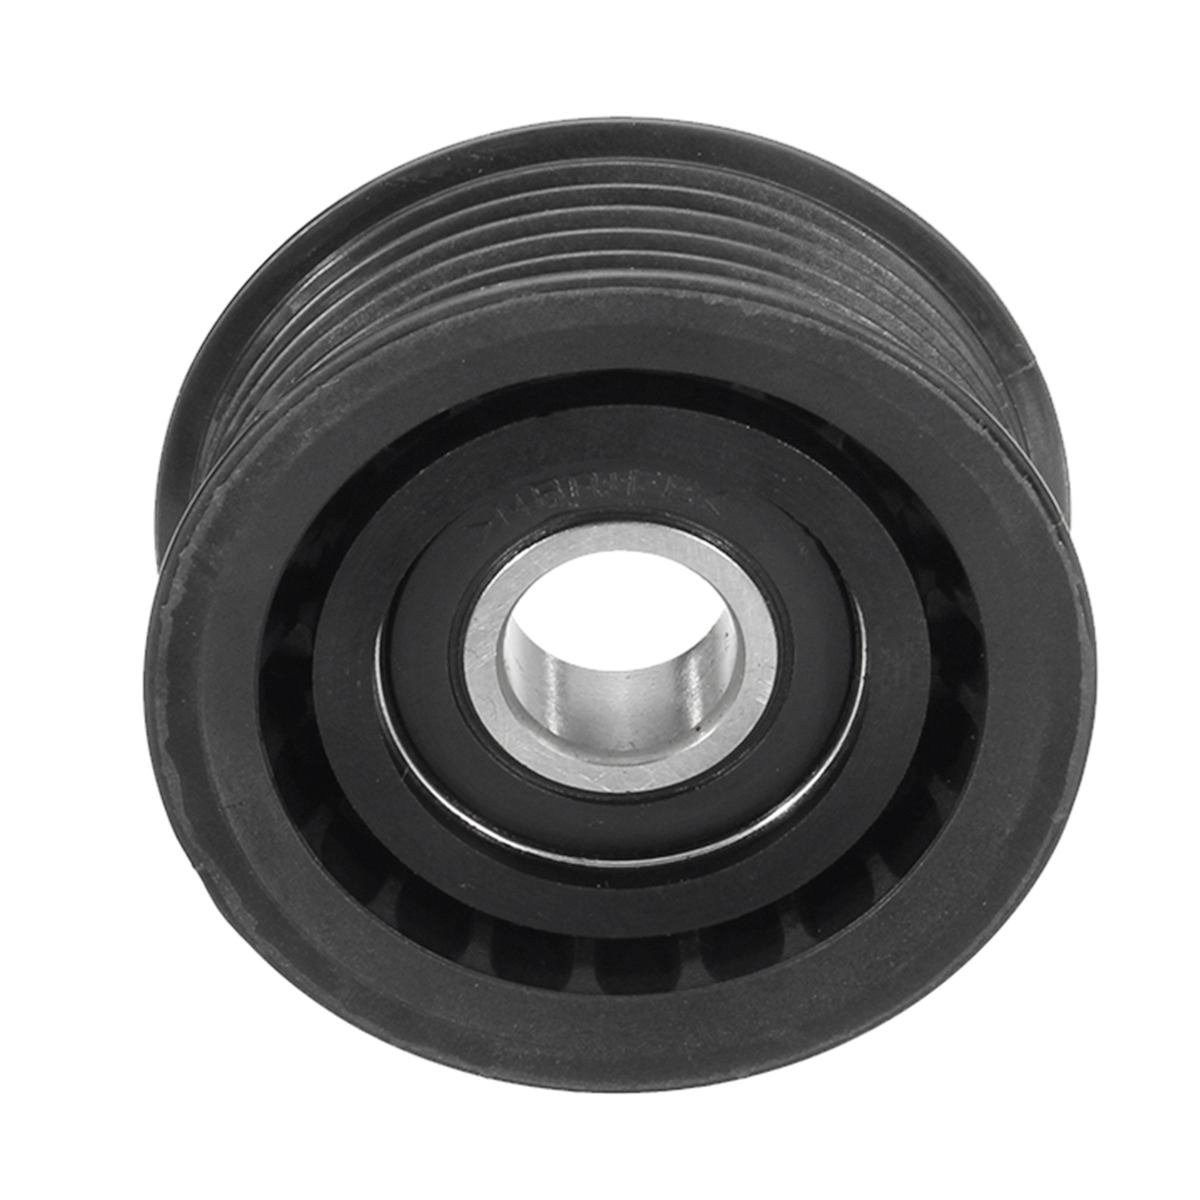 <font><b>Car</b></font> Belt tensioner <font><b>Pulley</b></font> Plastic Black for Mercedes W202 W203 W210 W211 W140 W220 W164 0002020019 image